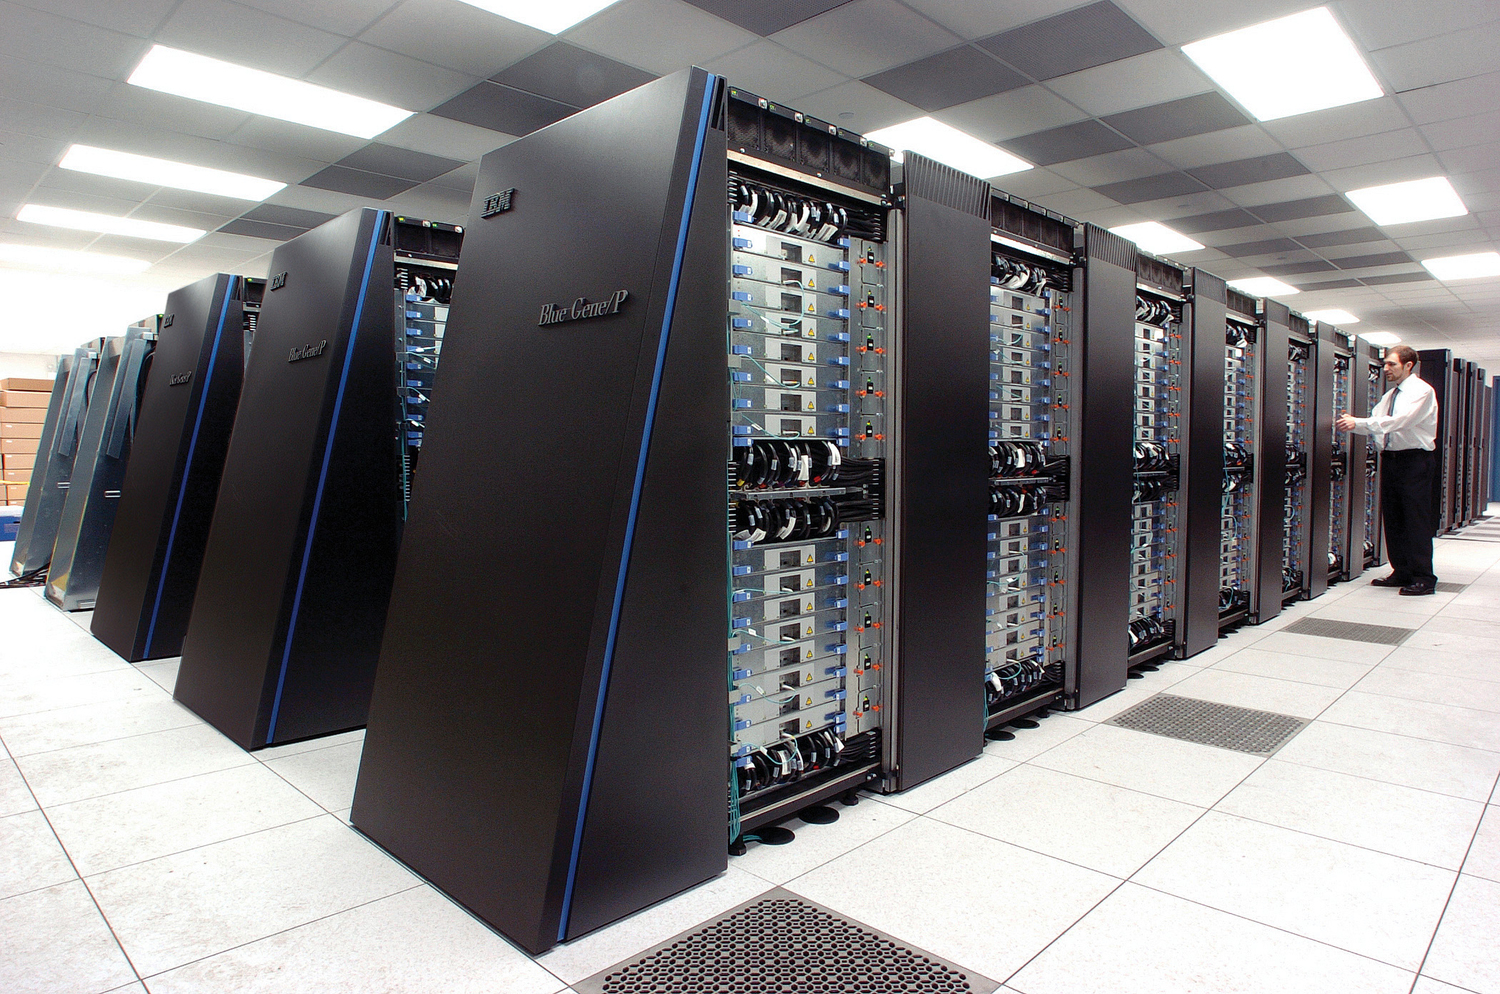 The Blue Gene/P supercomputer at Argonne National Lab